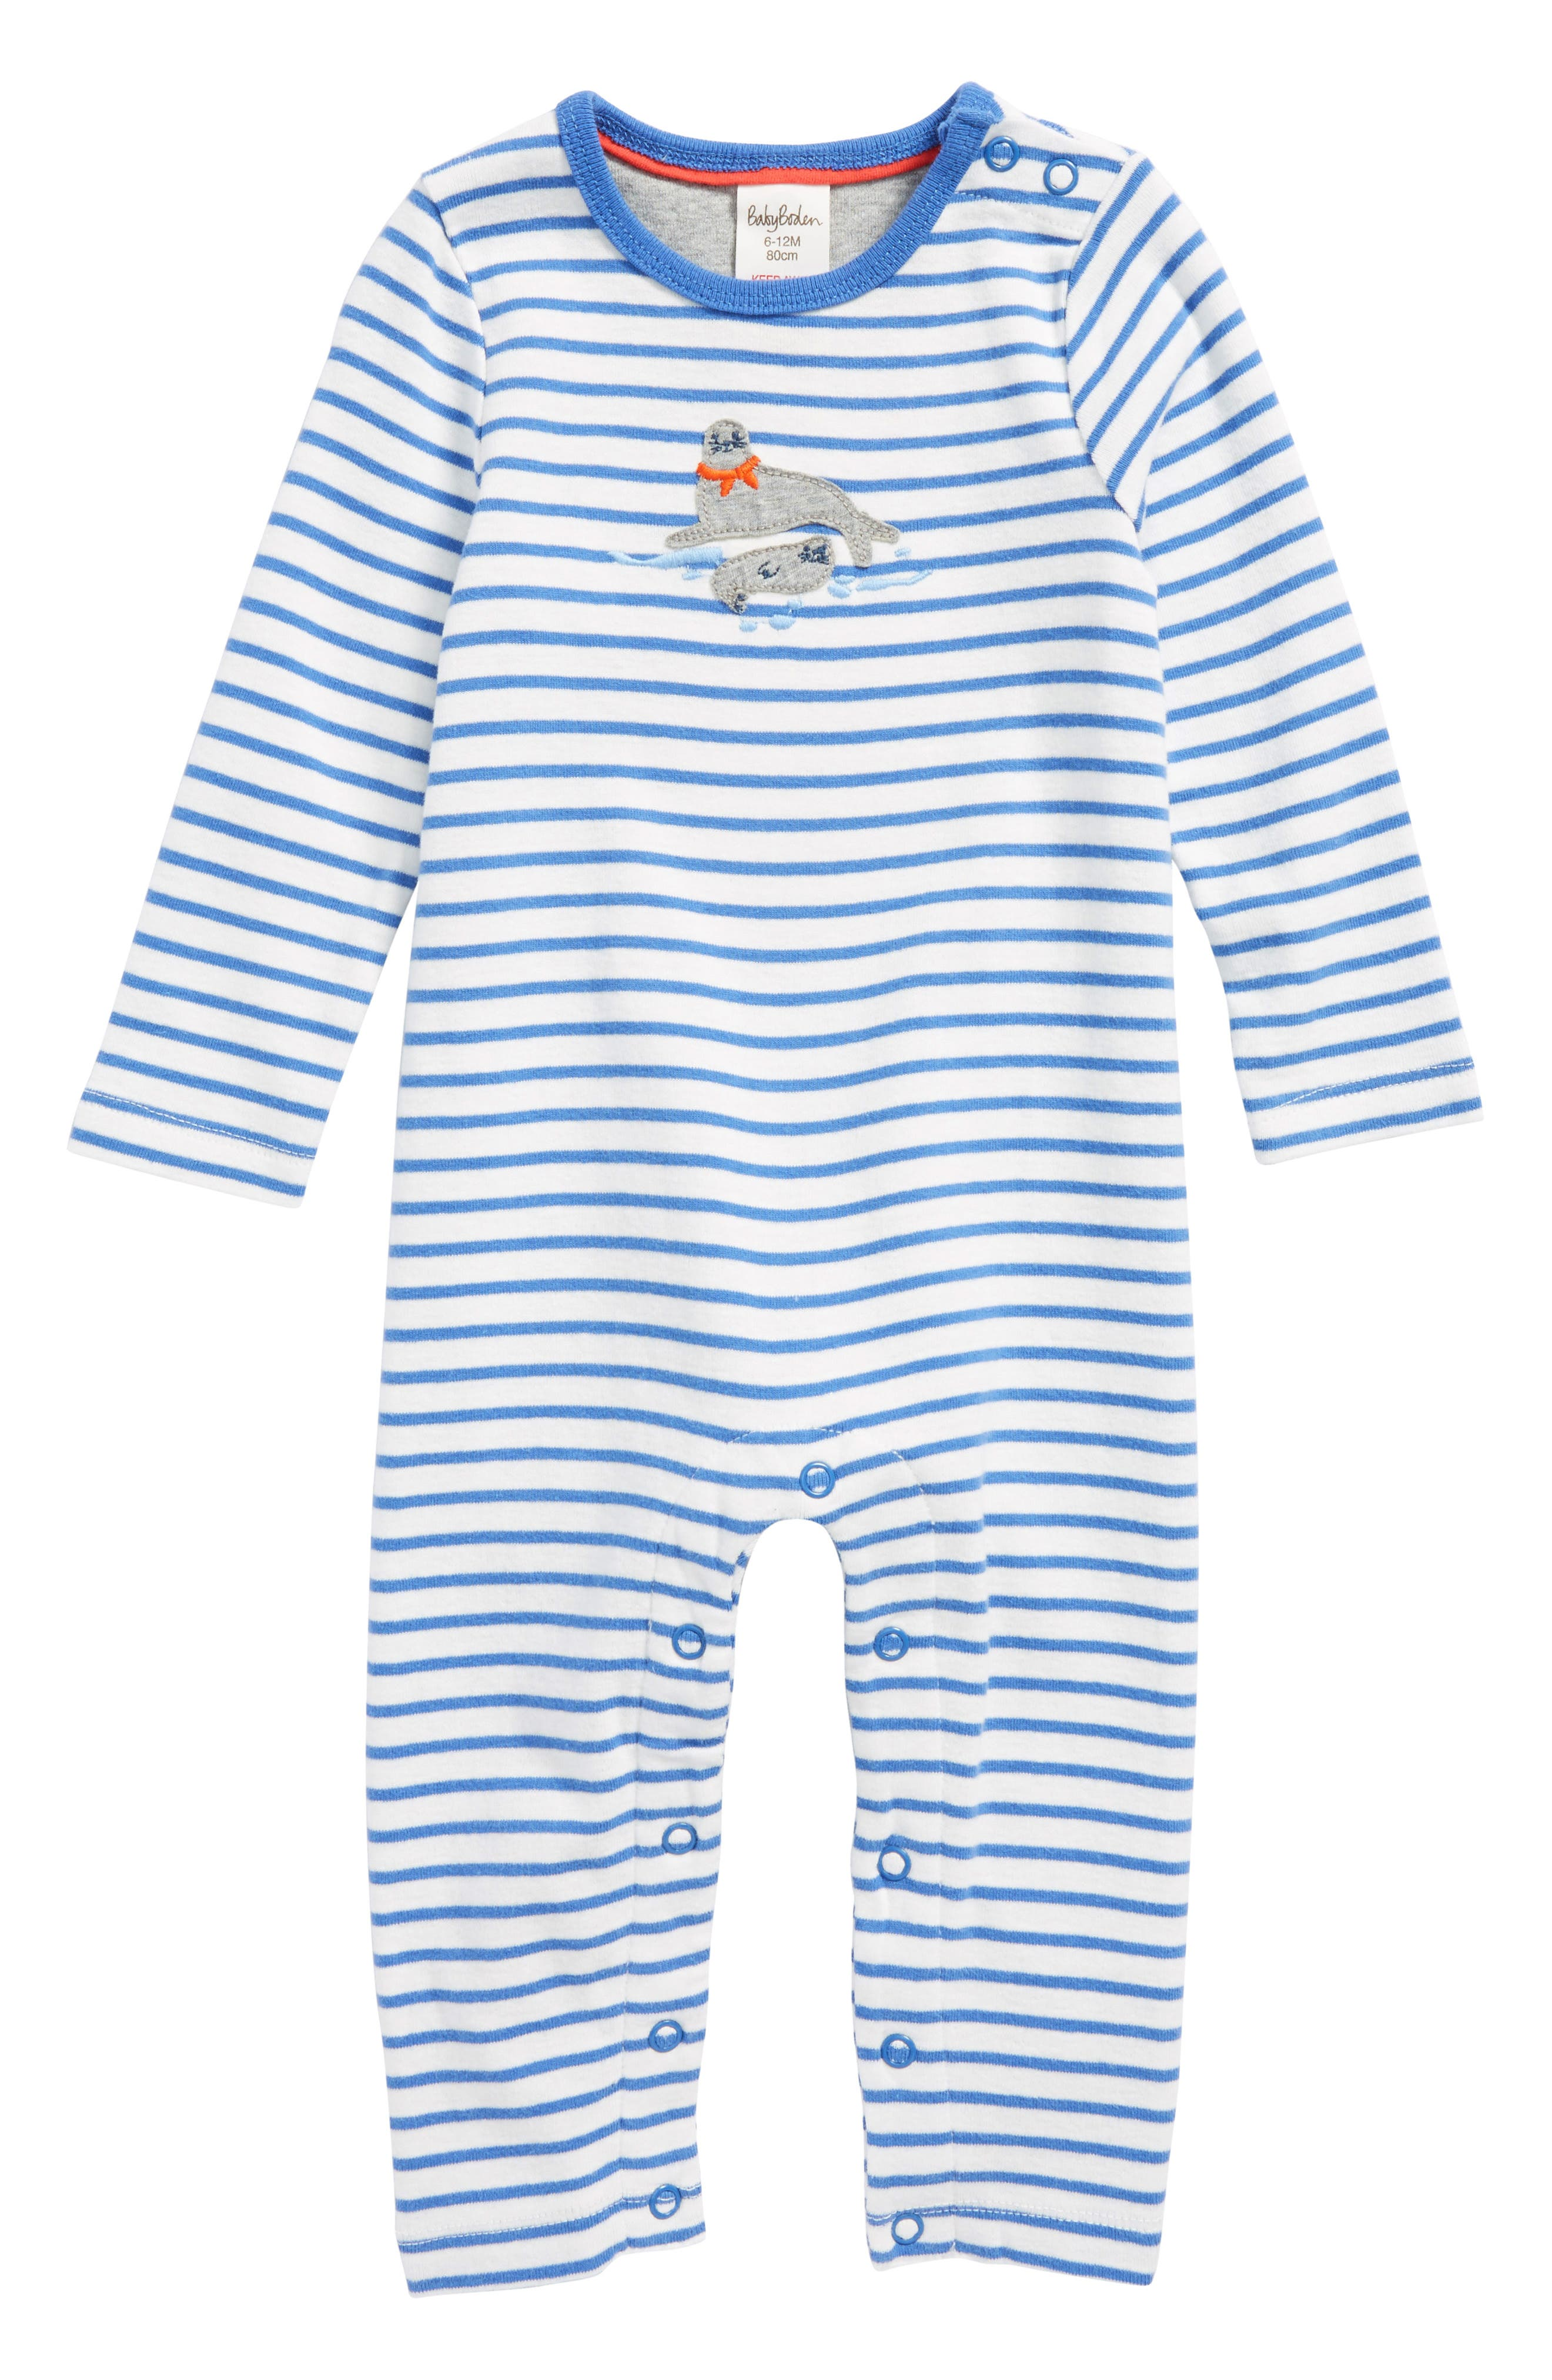 Seal Appliqué Organic Cotton Romper,                         Main,                         color, Ivory/ Stowaway Blue